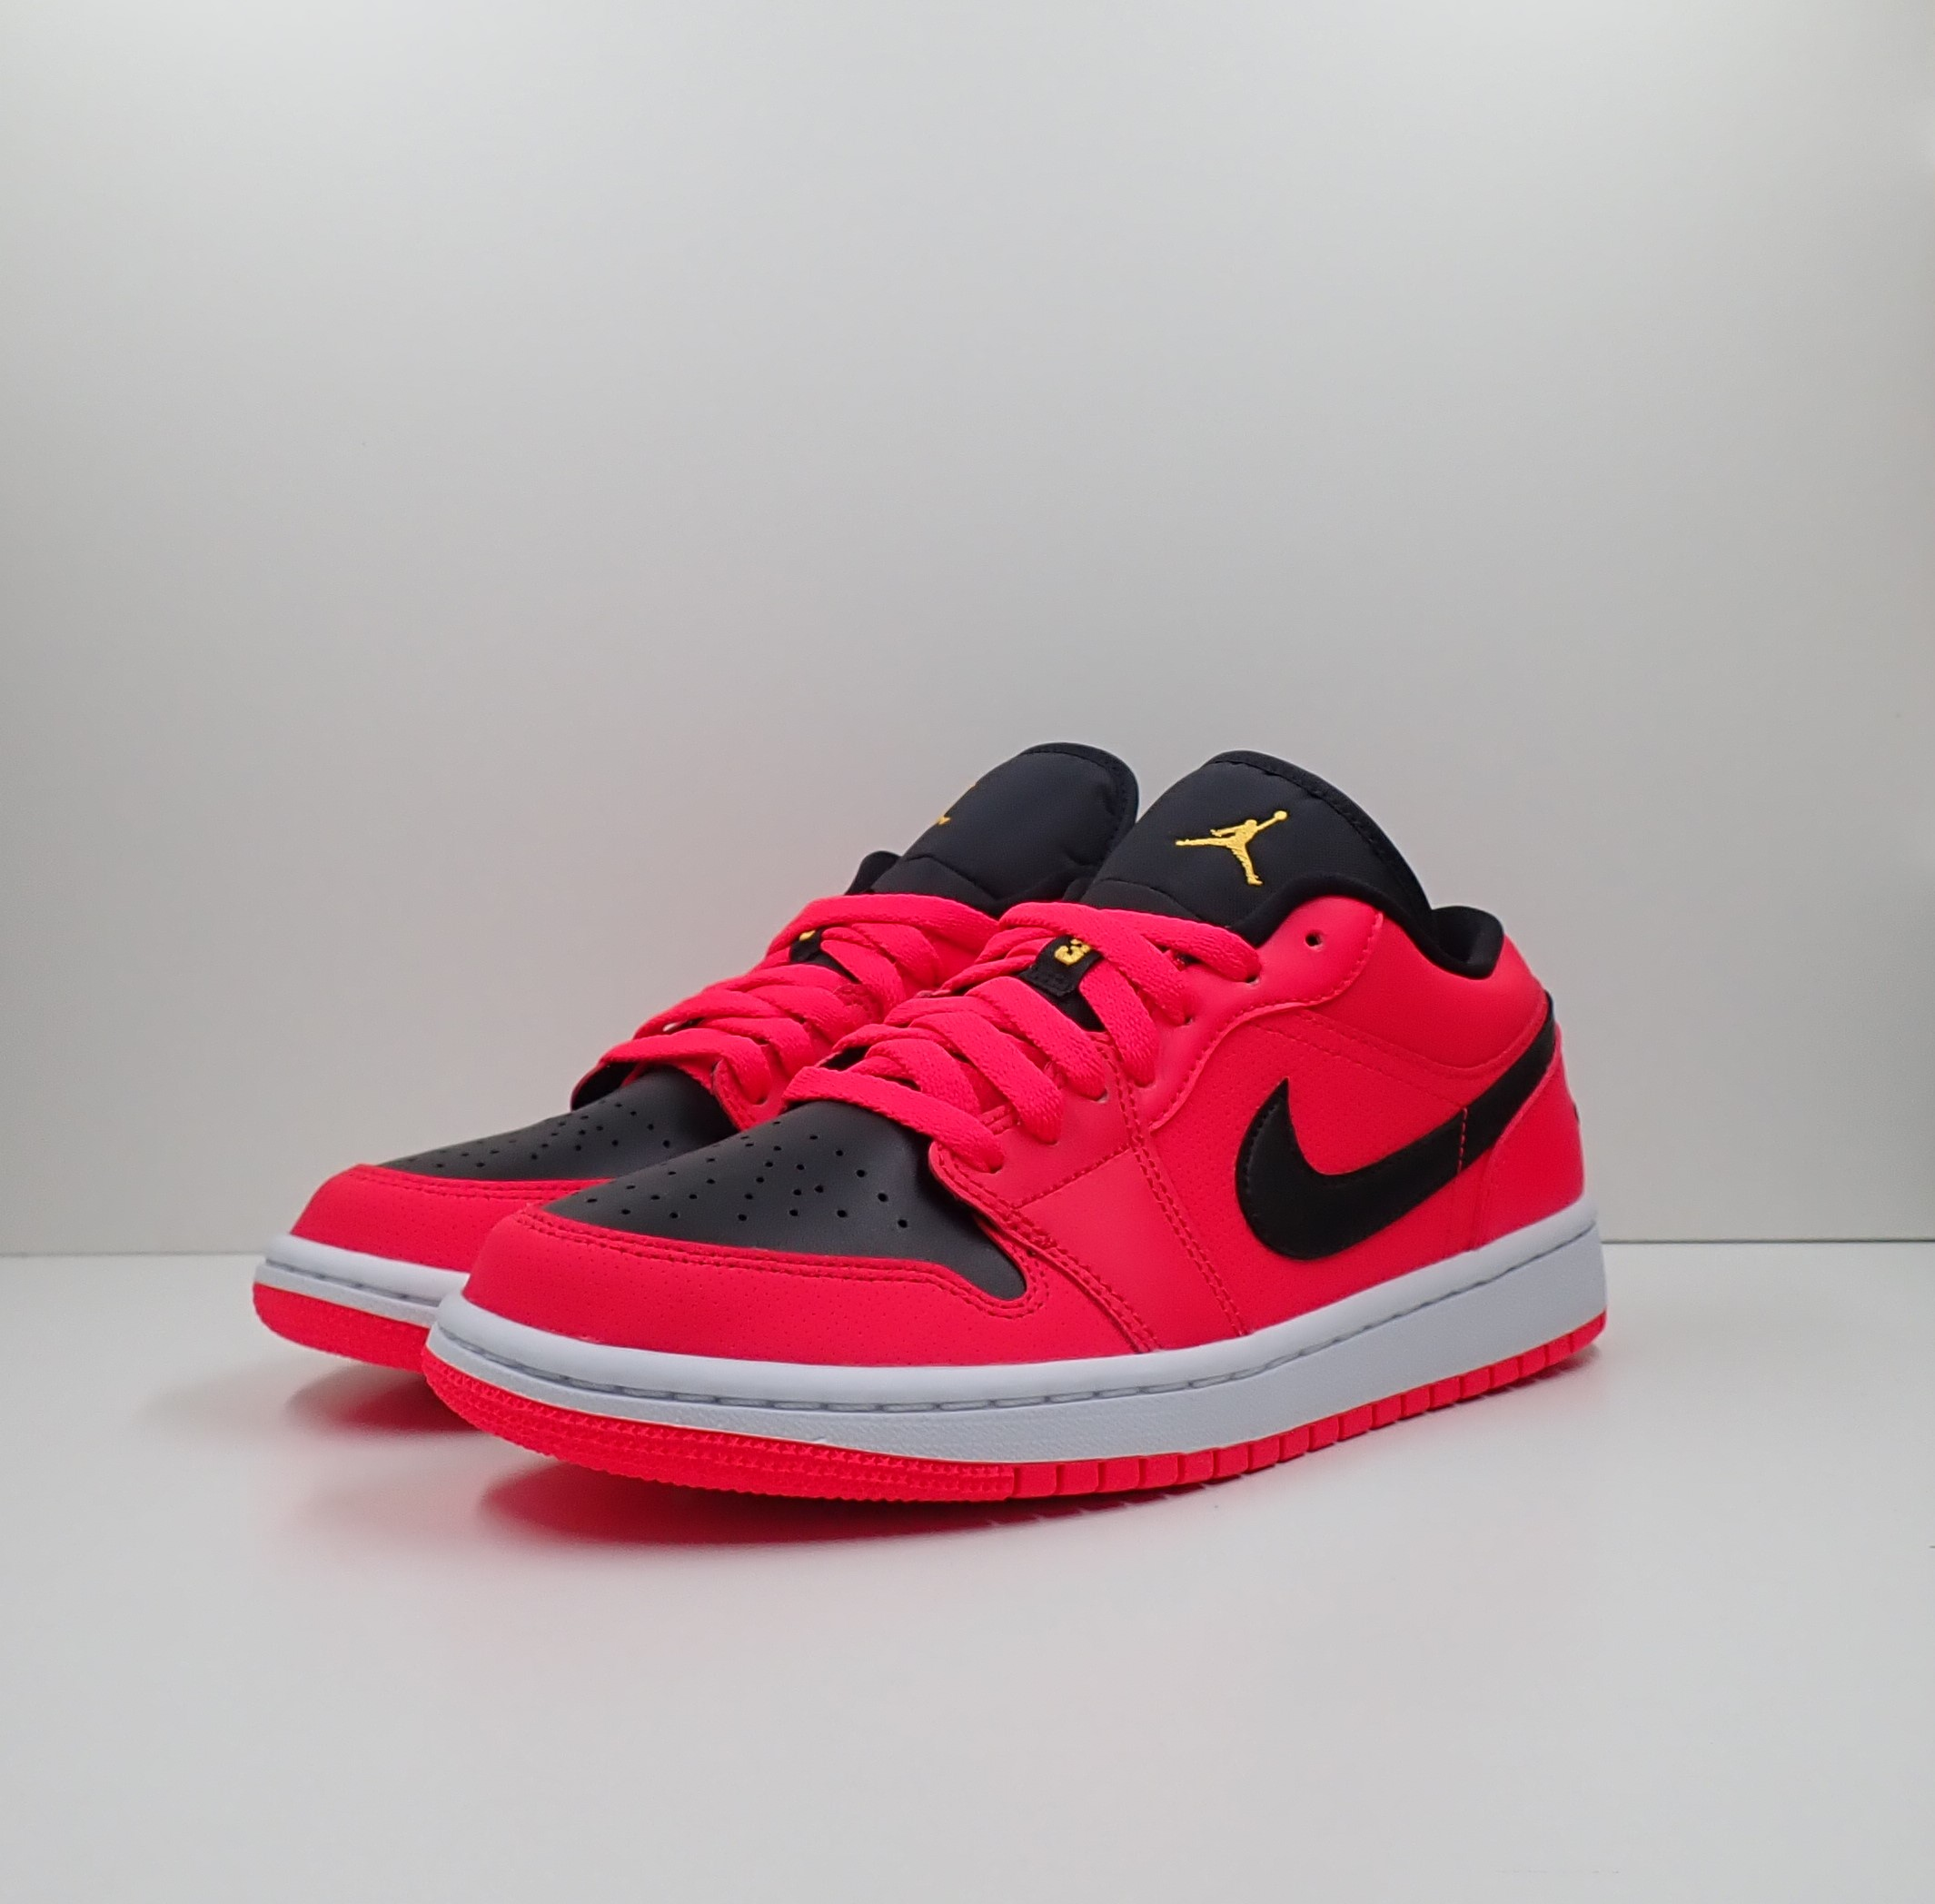 Jordan 1 Low Siren Red (W)